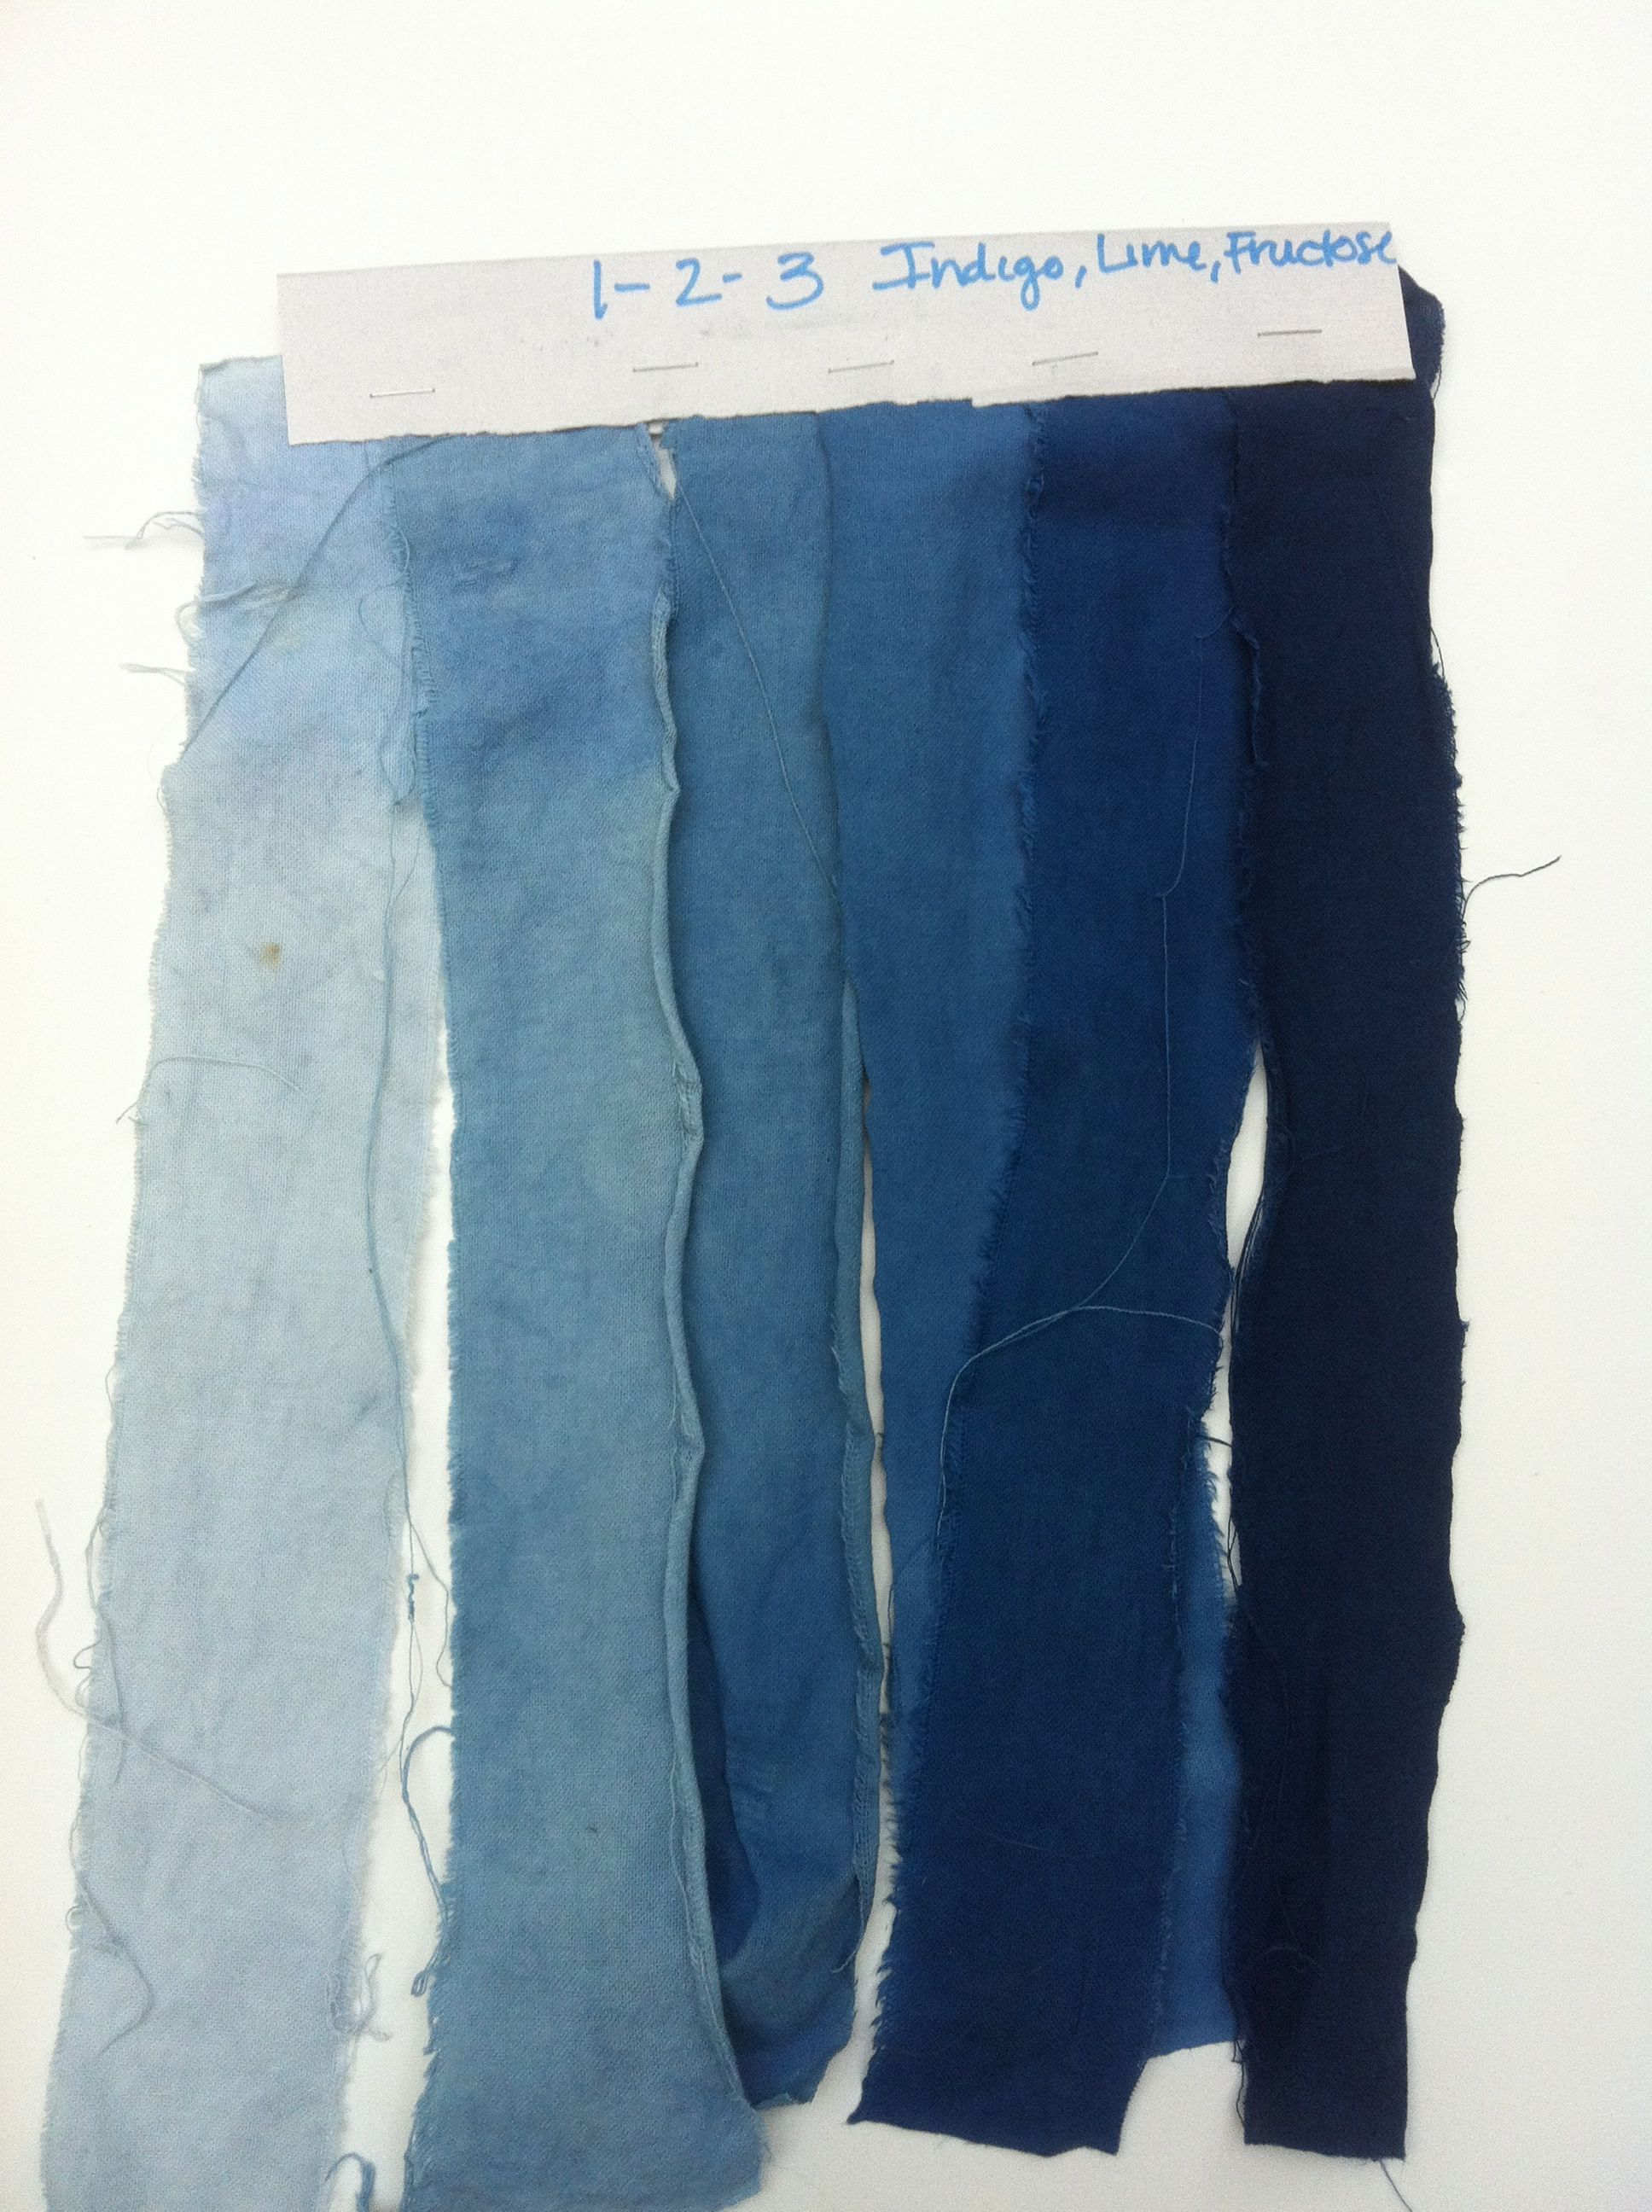 1-2-3 indigo vat and some itajime at the JANM | Shibori Girl